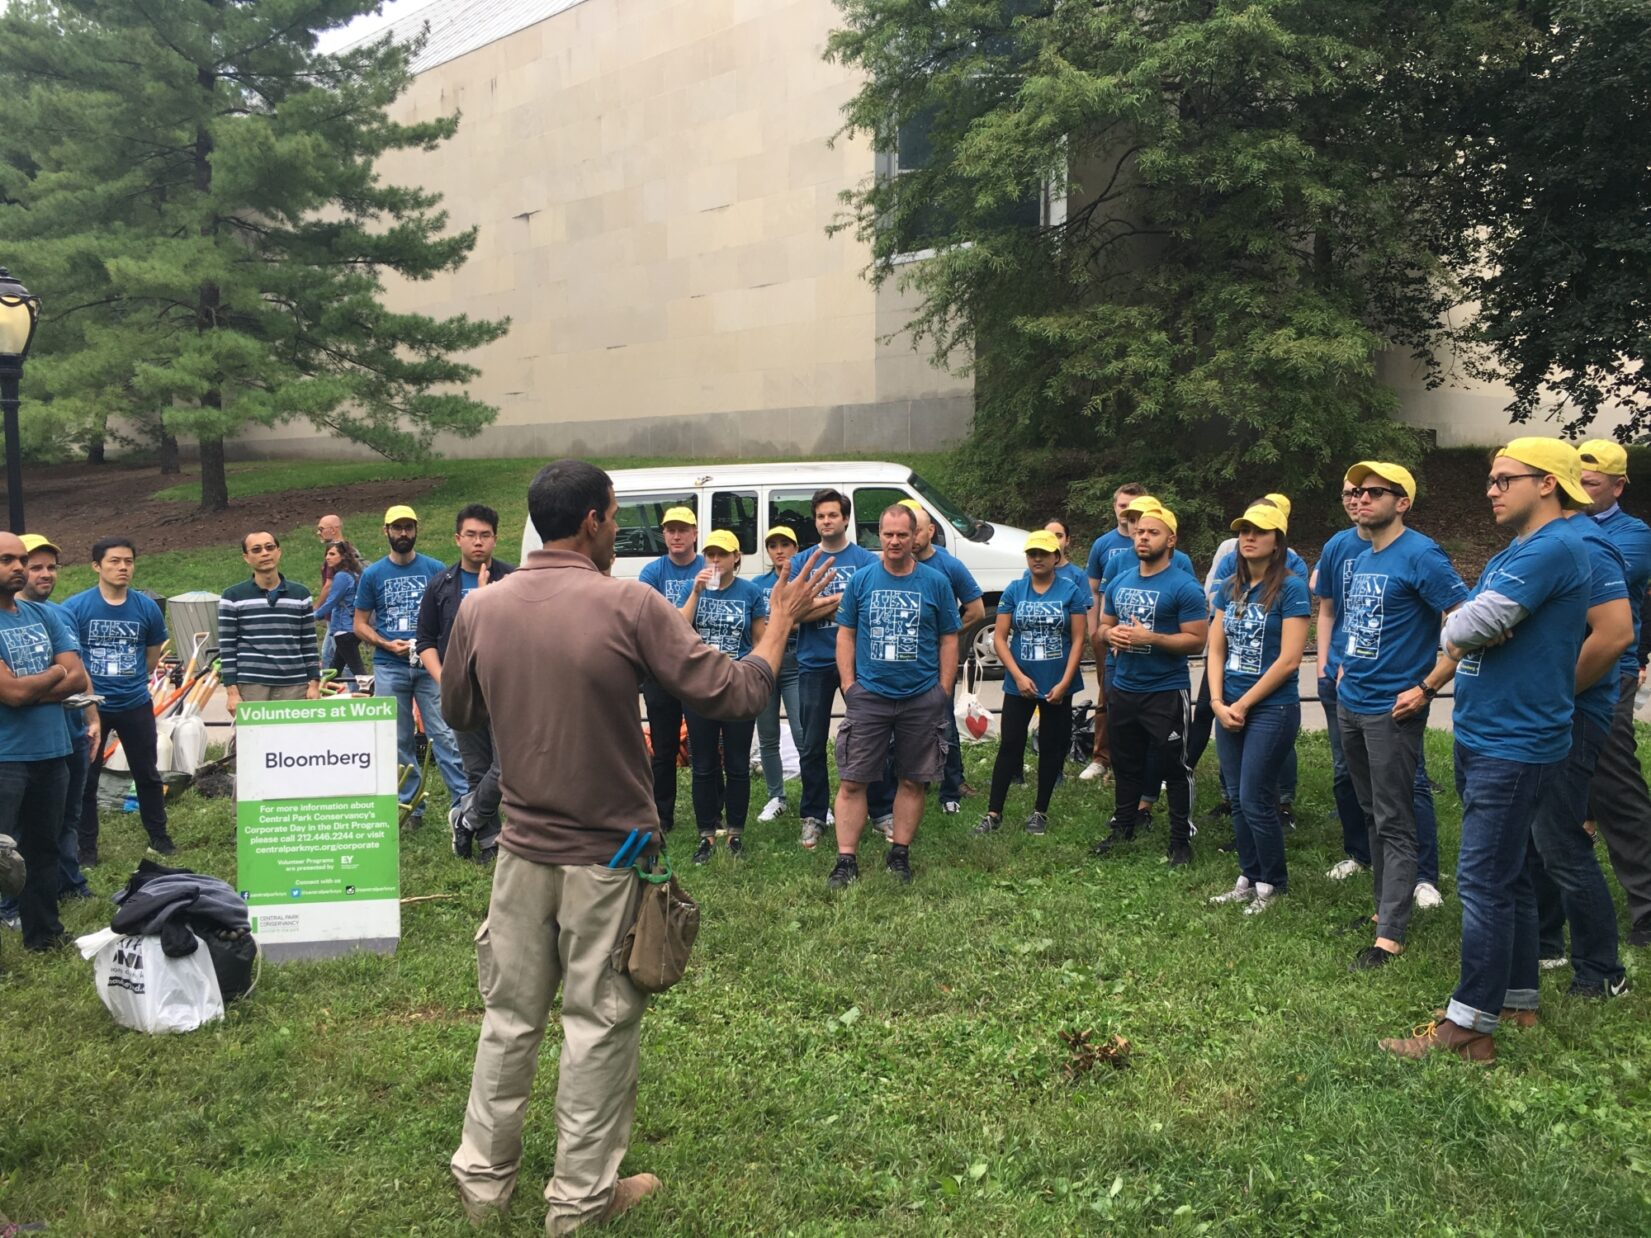 Volunteers from Bloomberg receive instructions before starting their day of volunteering